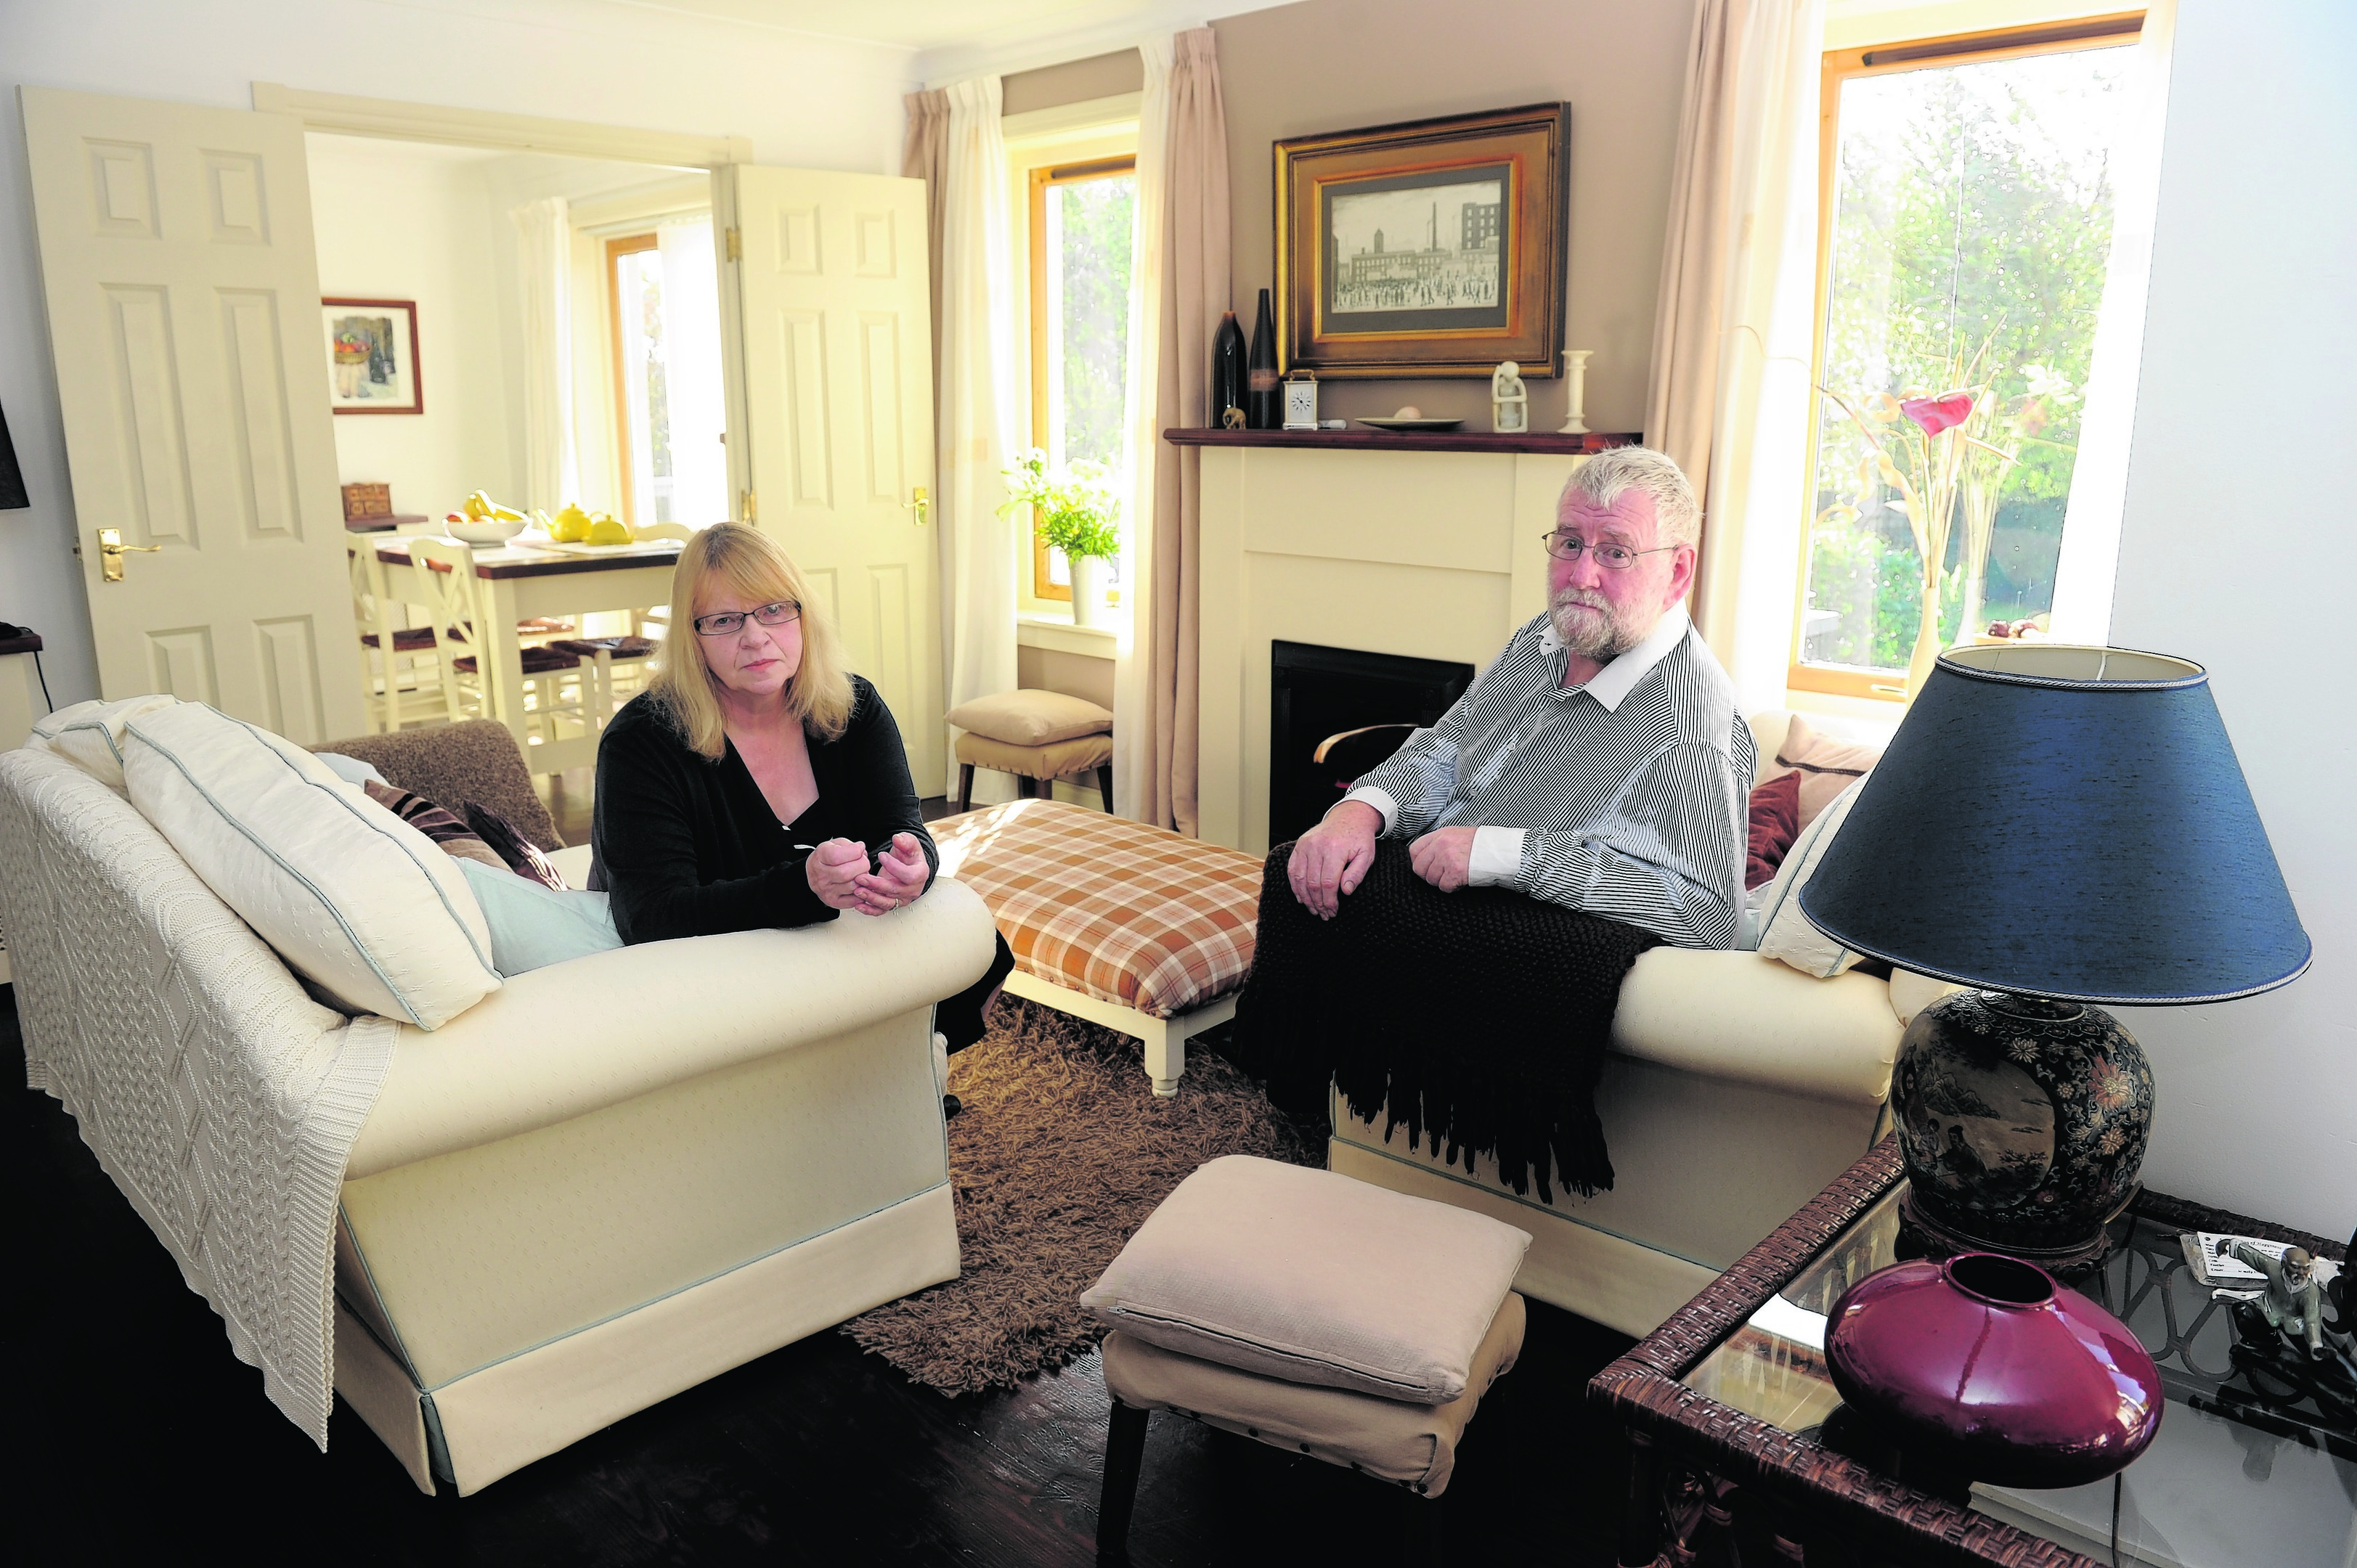 Kerry and Anne McCusker owners of Craigowrie House in Garmouth, Moray